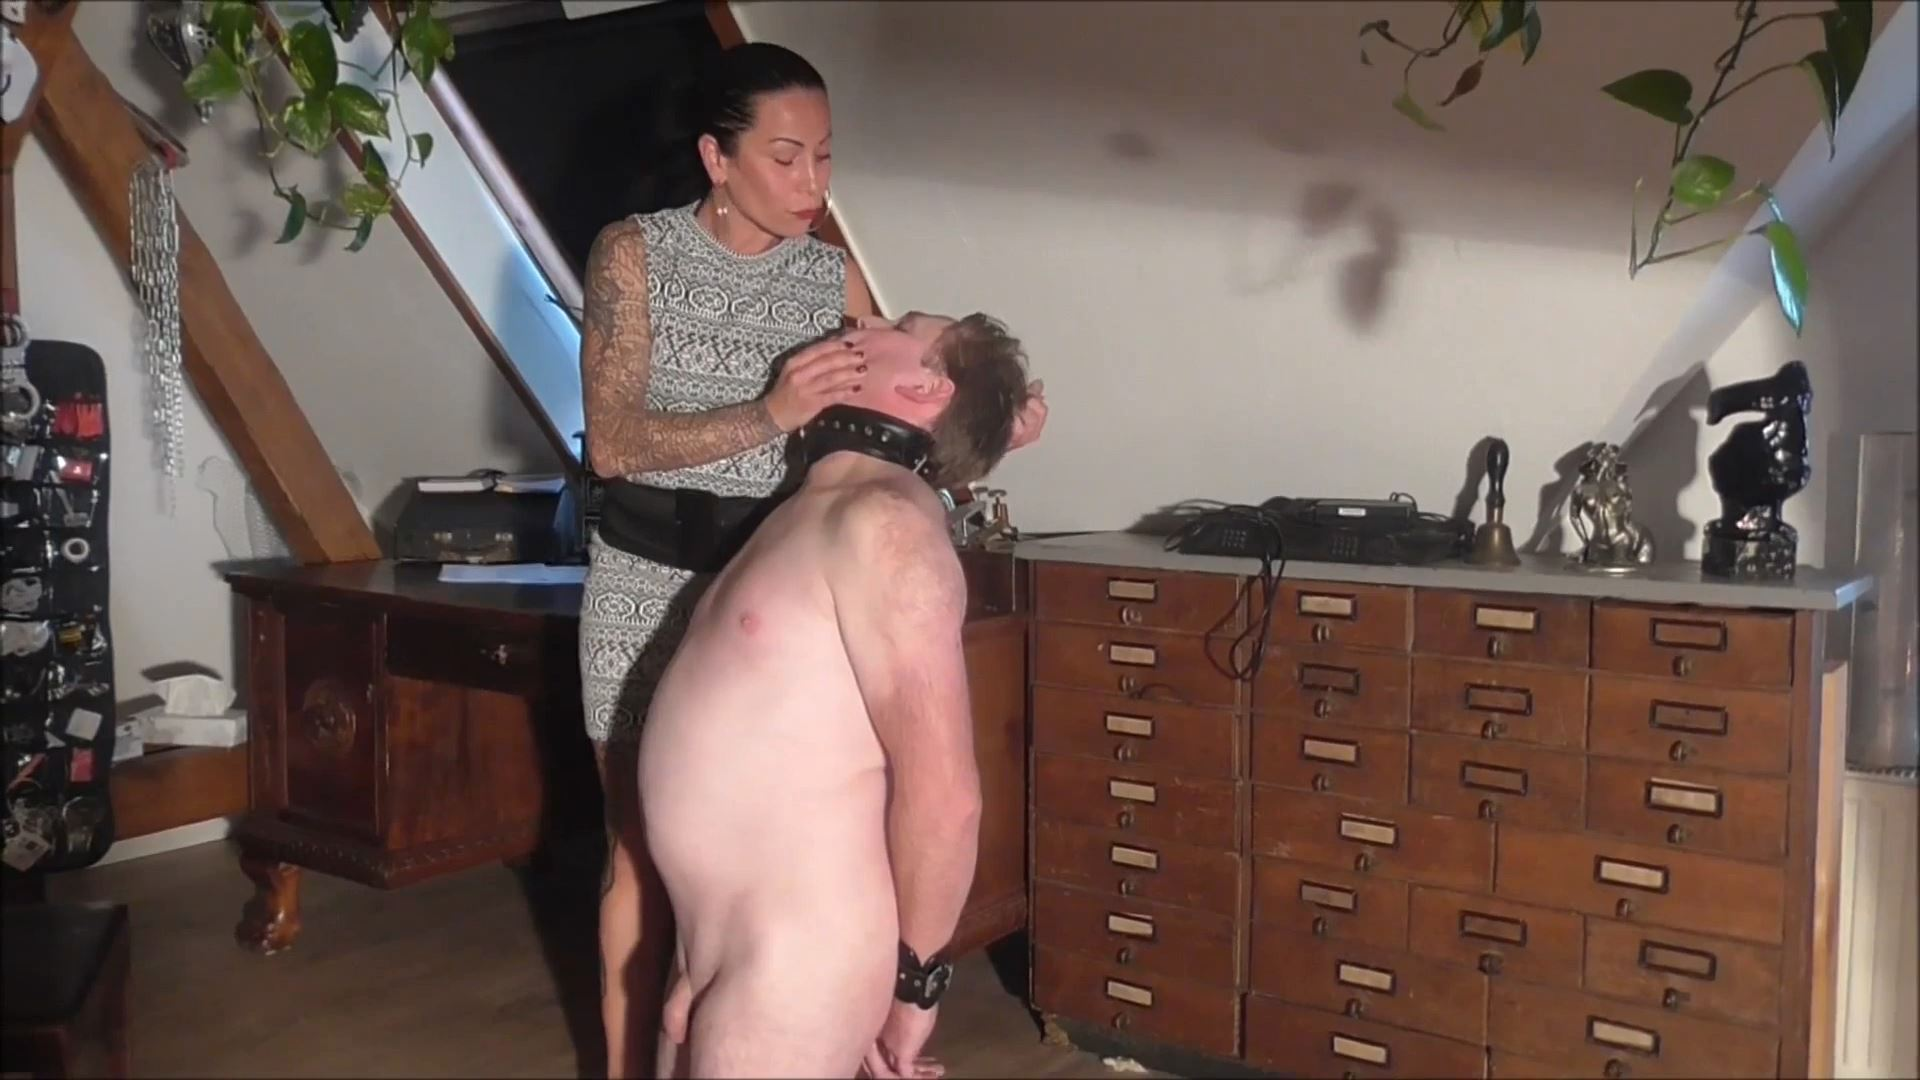 SENORA EL COMBATIENTE In Scene: MY NEW FACE IN NEED OF A FIST - DEUTSCHE DOMINAS / GERMANY FEMDOM - FULL HD/1080p/MP4